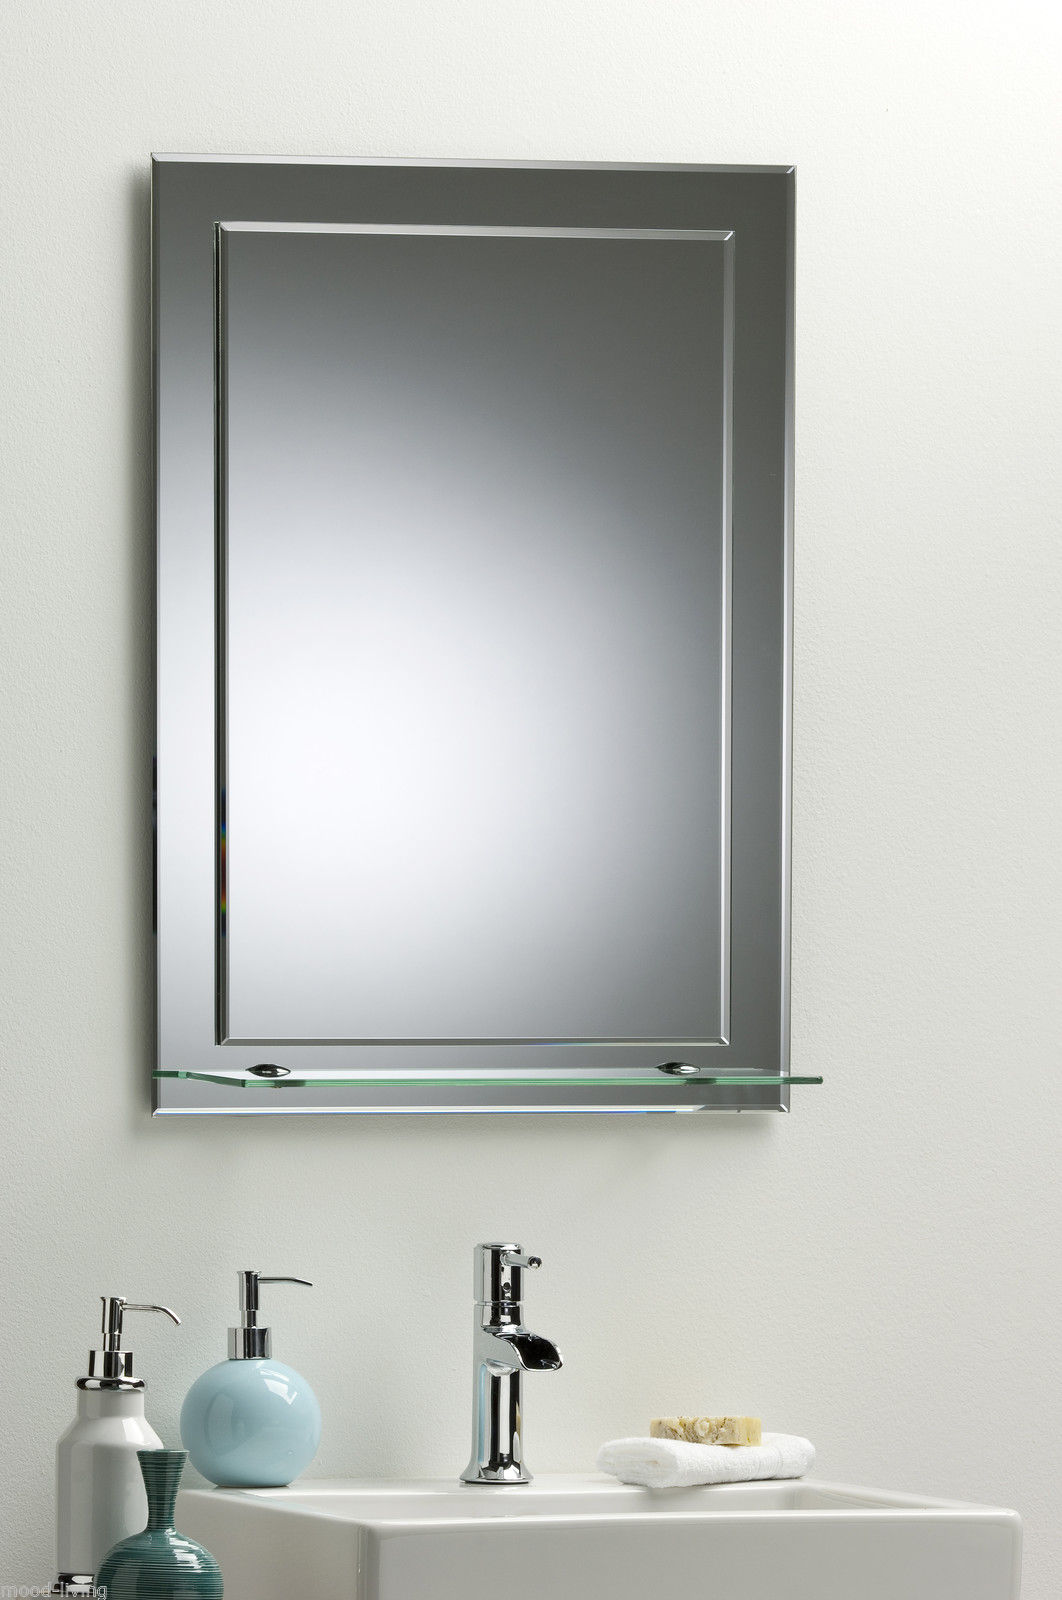 bathroom wall mounted mirrors bathroom mirror on mirror rectangular with shelf 17143 | 913 1